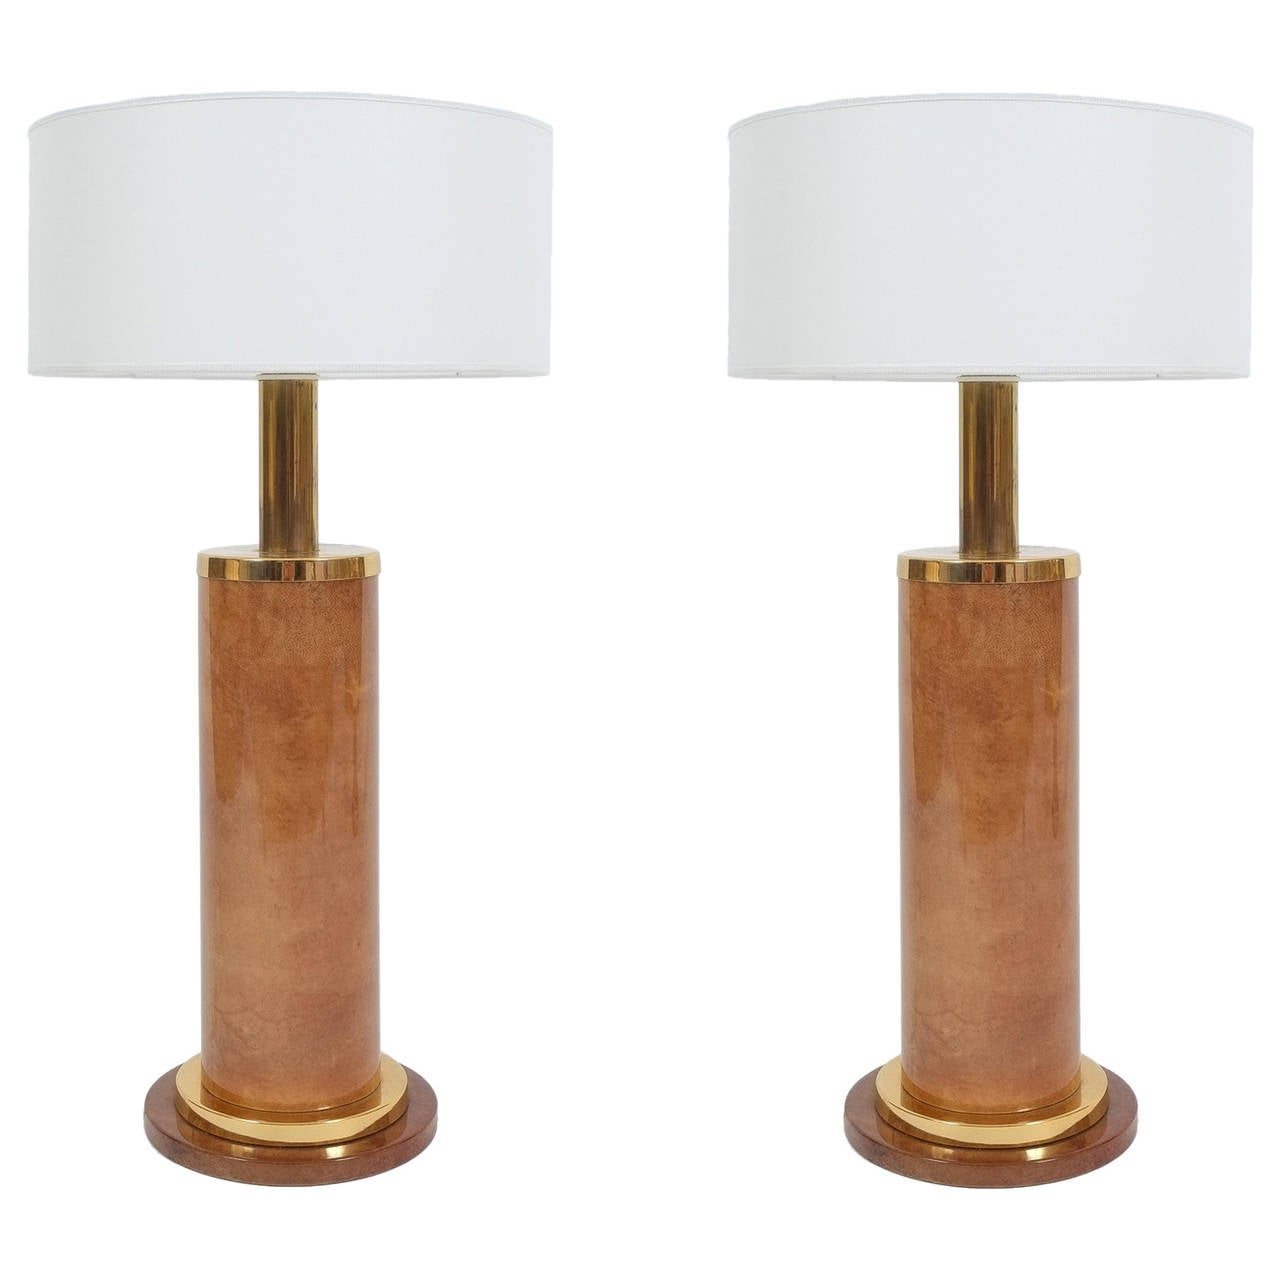 Aldo Tura Pair of Large Table Lamps Parchment, Italy, circa 1960